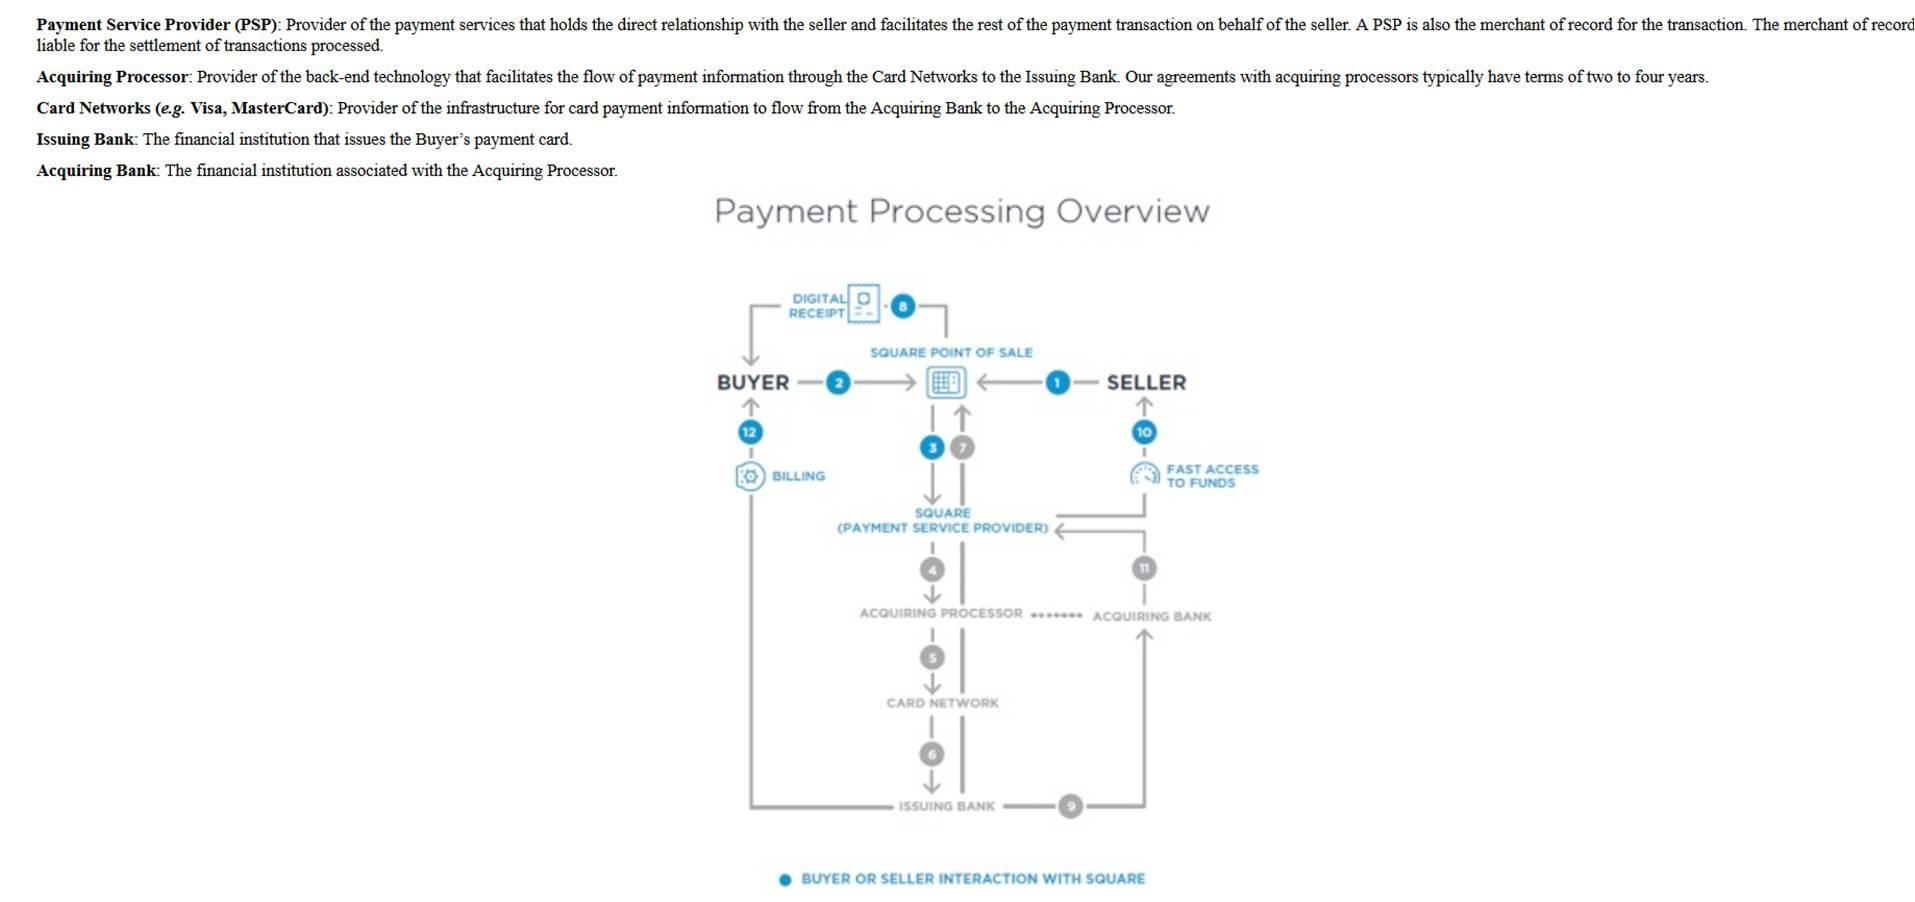 Why we are declining payment for square square inc nysesq square settles transactions with merchants within one business day by automated clearing house ach or same day via an instant deposit for an added fee pooptronica